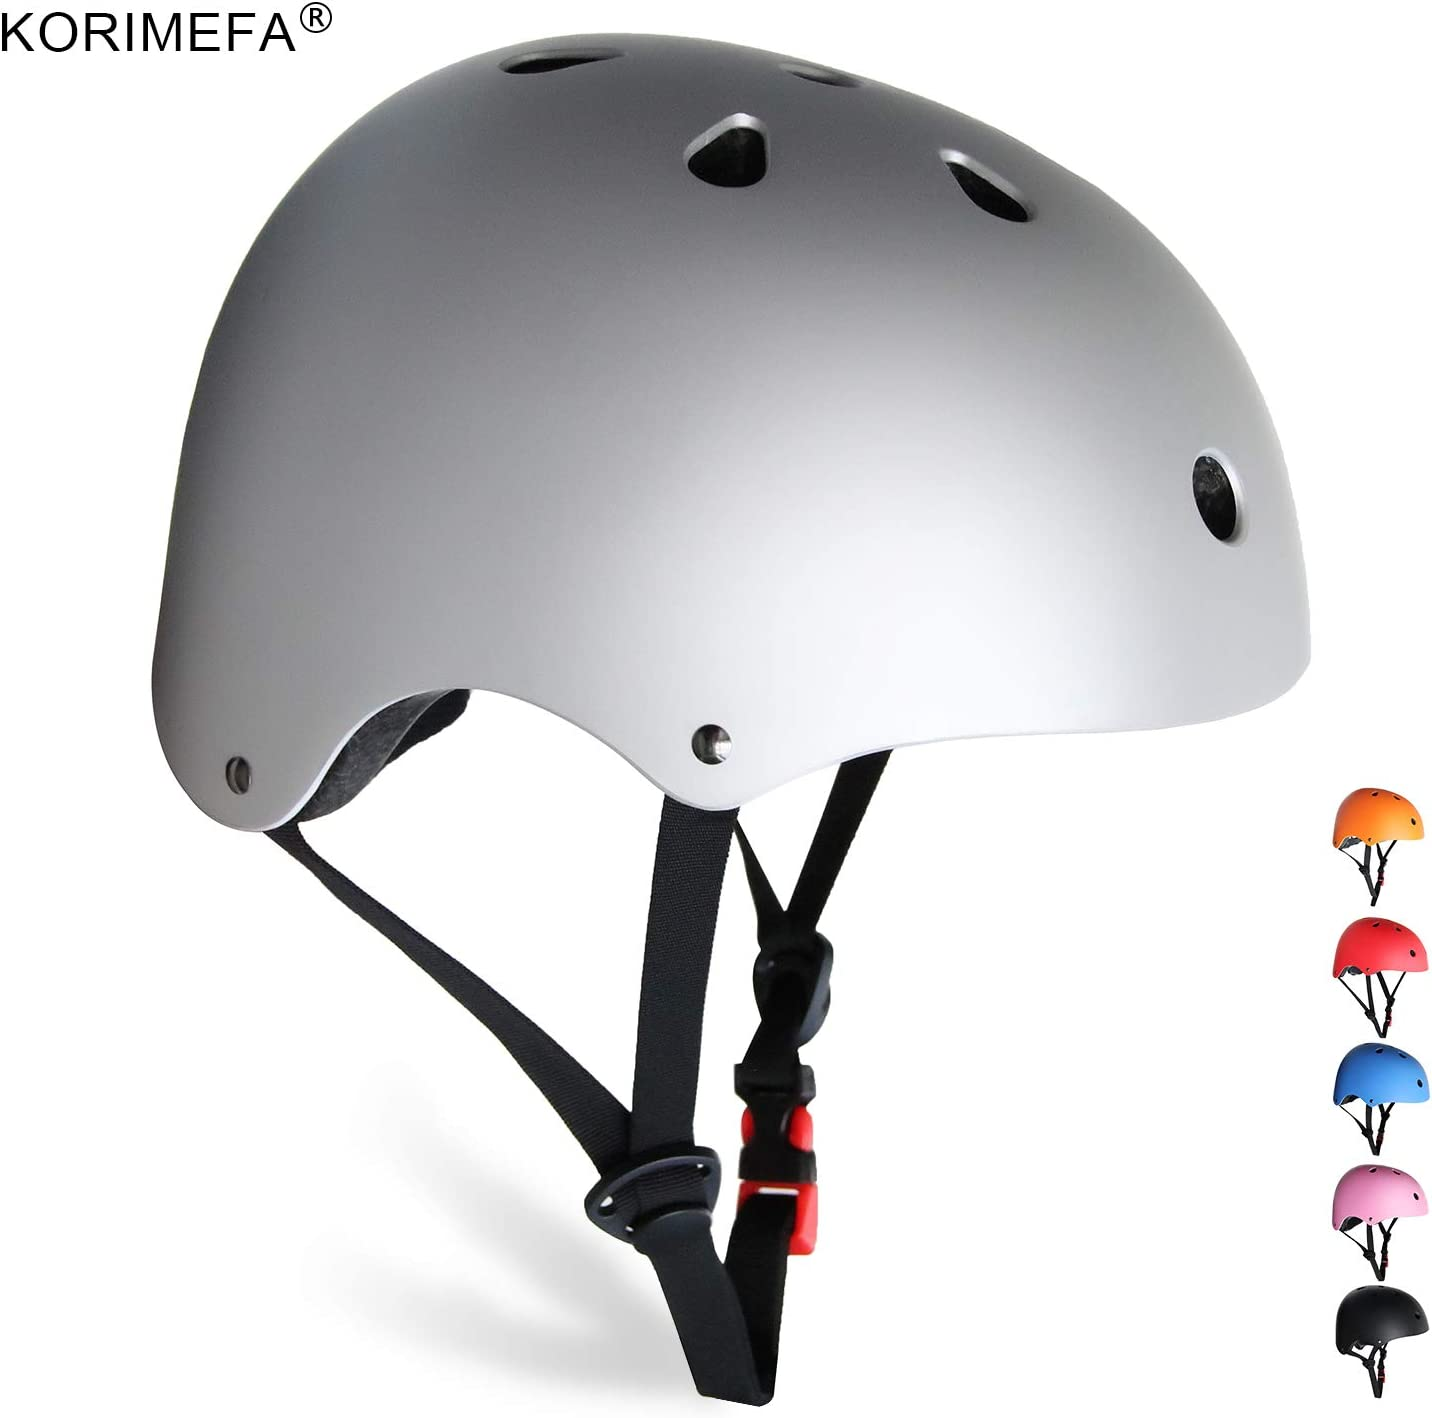 KORIMEFA Kids Bike Helmet Toddler Helmet 3-8 Years Kids Skateboard Helmet Multi-Sport Cycling Helmet CPSC Certified Impact Resistance Ventilation Adjustable Helmets Outdoor Sports